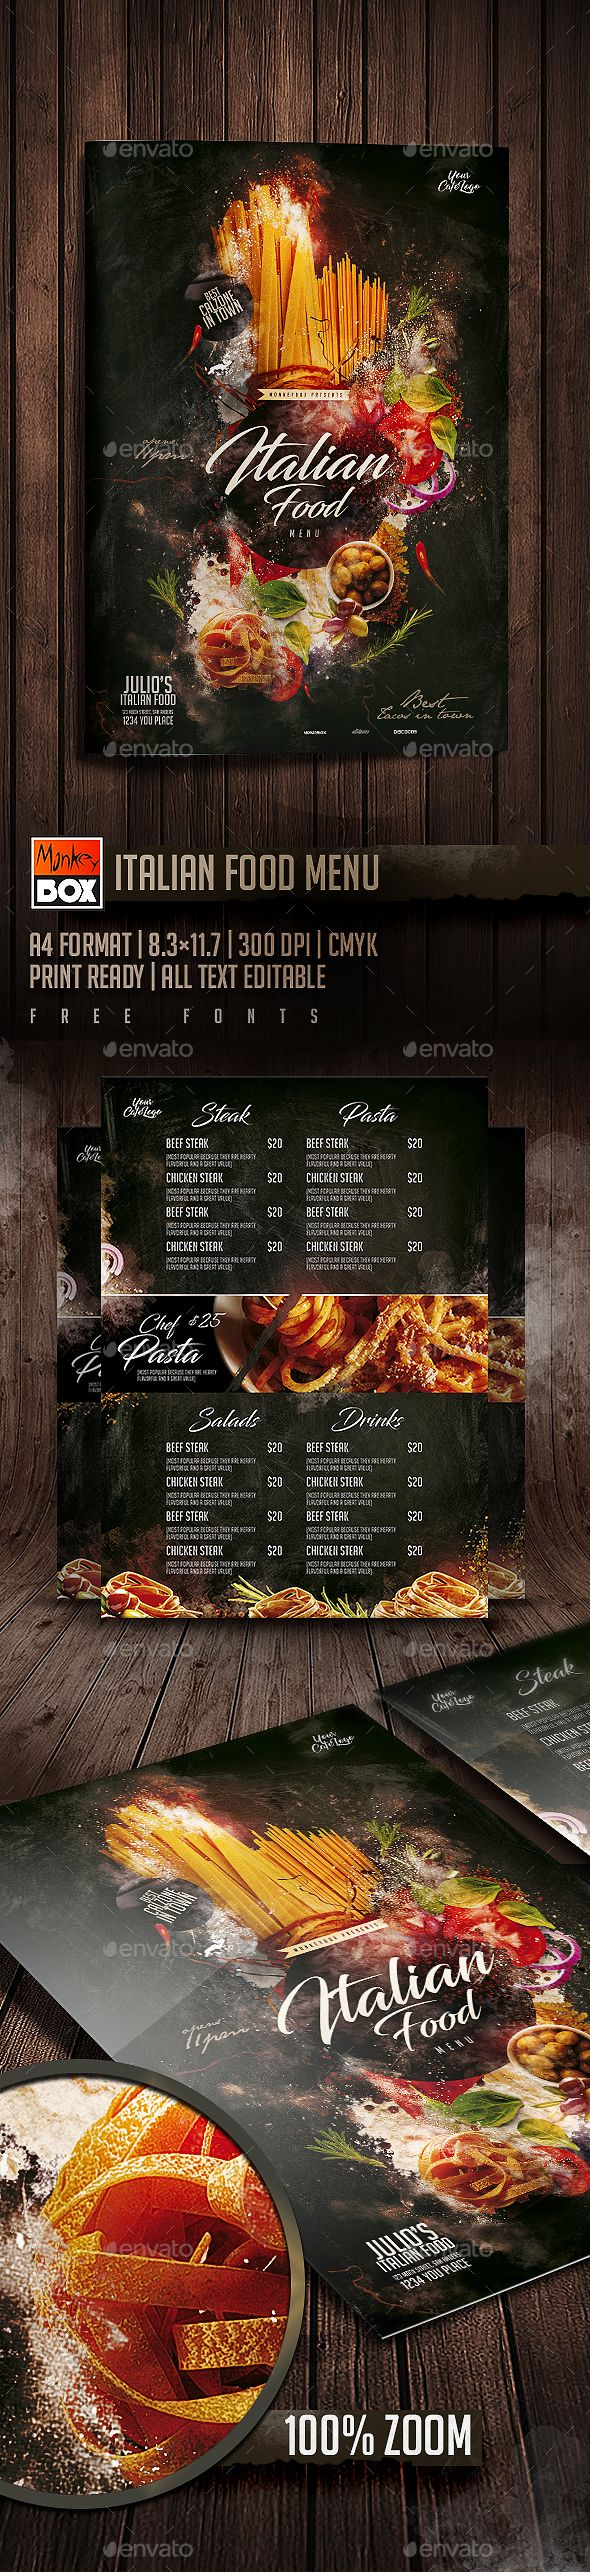 Italian Food Menu — Photoshop PSD #caffe #cover • Download ➝ https://graphicriver.net/item/italian-food-menu/19703094?ref=pxcr